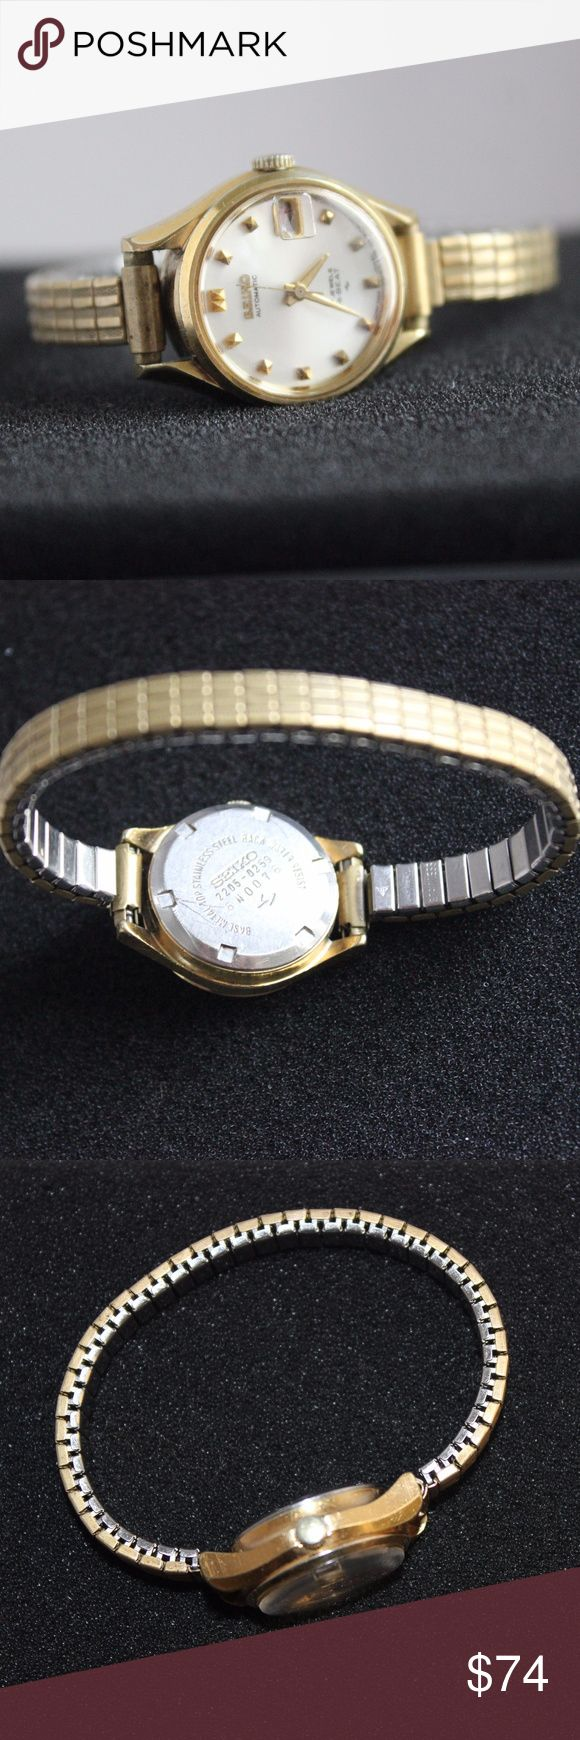 SEIKO AUTOMATIC GOLD WATCH Seiko Automatic Gold Watch. 17 jewels/Hi-beat. Date. Stainless steel back. Water resistant. Base metal top. #'s 2205-0259/6N0076. Stretch wrist band. Works great. Works with your pulse. Seiko Accessories Watches